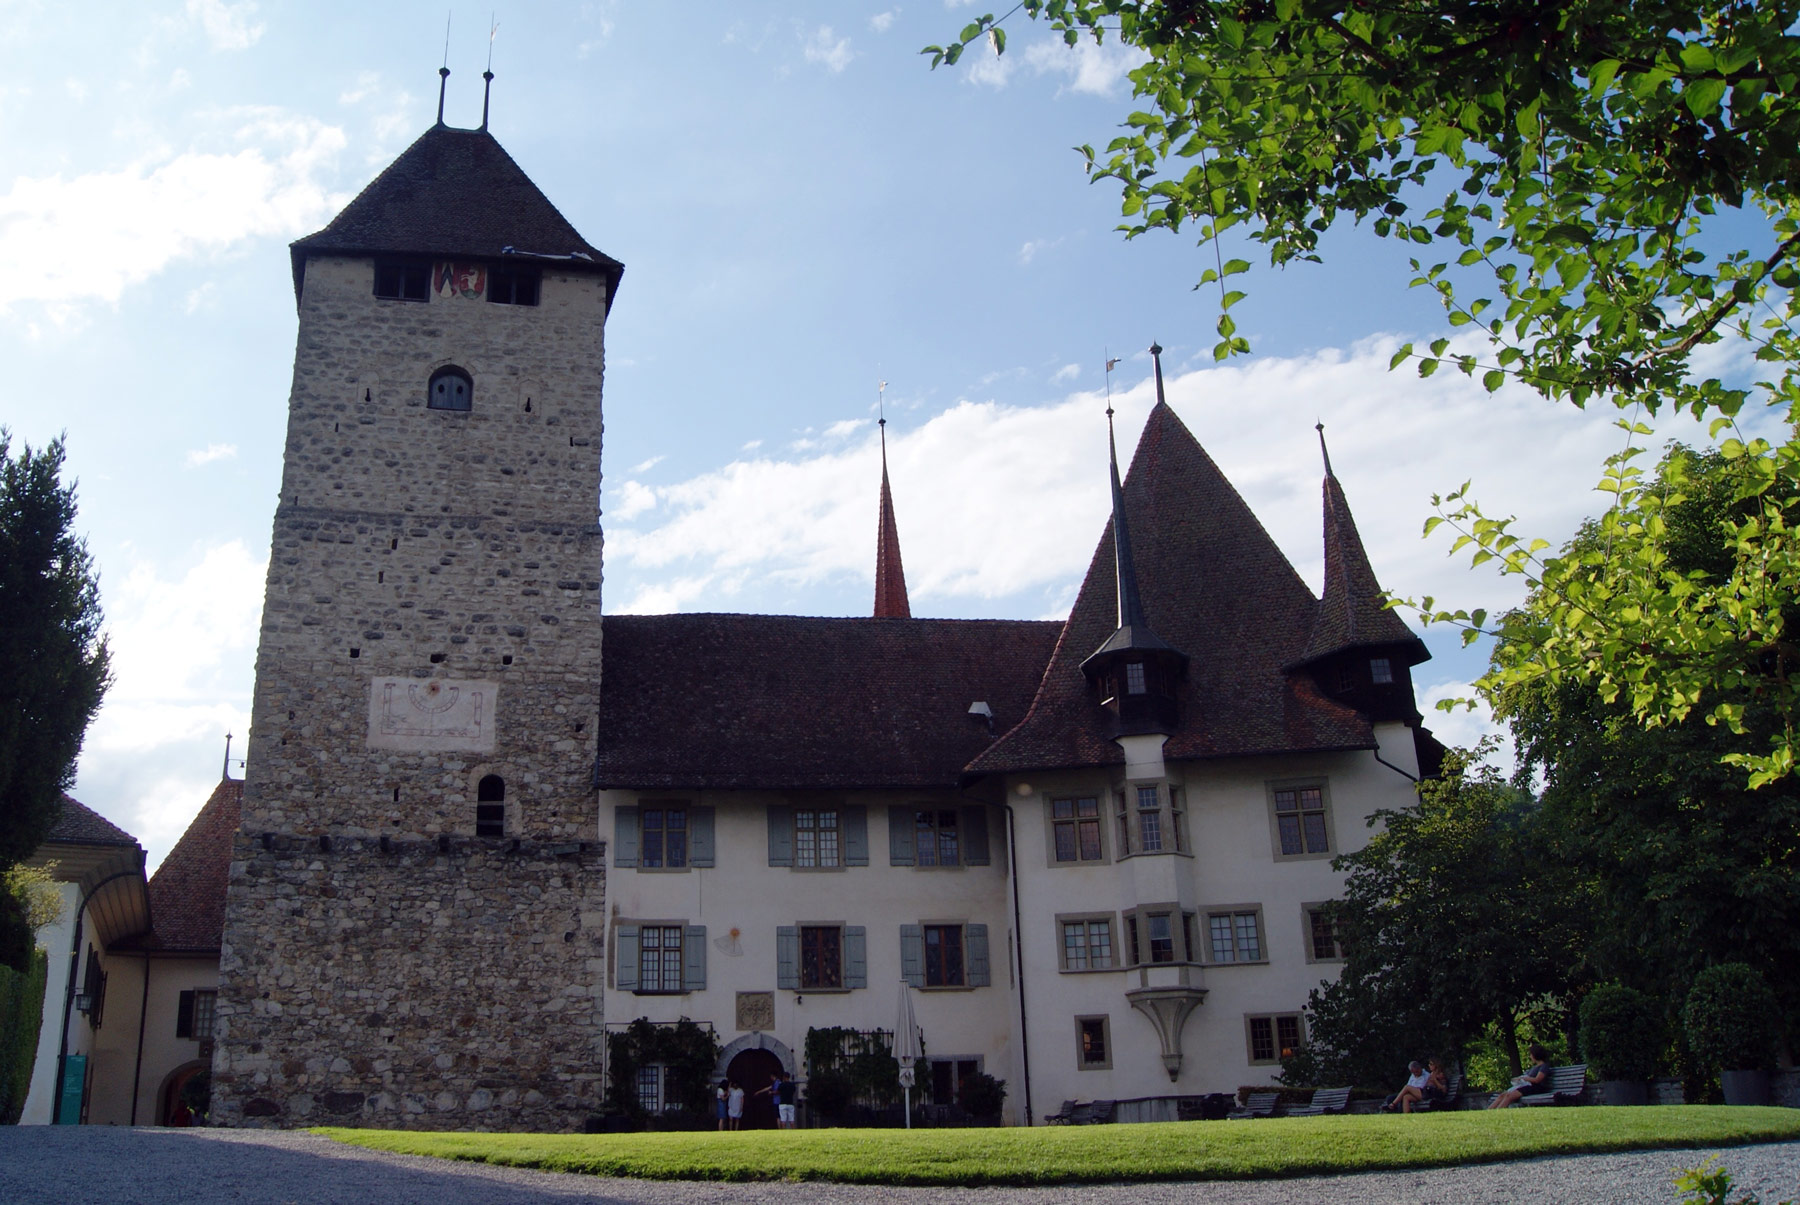 photo Oberland Suisse ville Spiez chateau